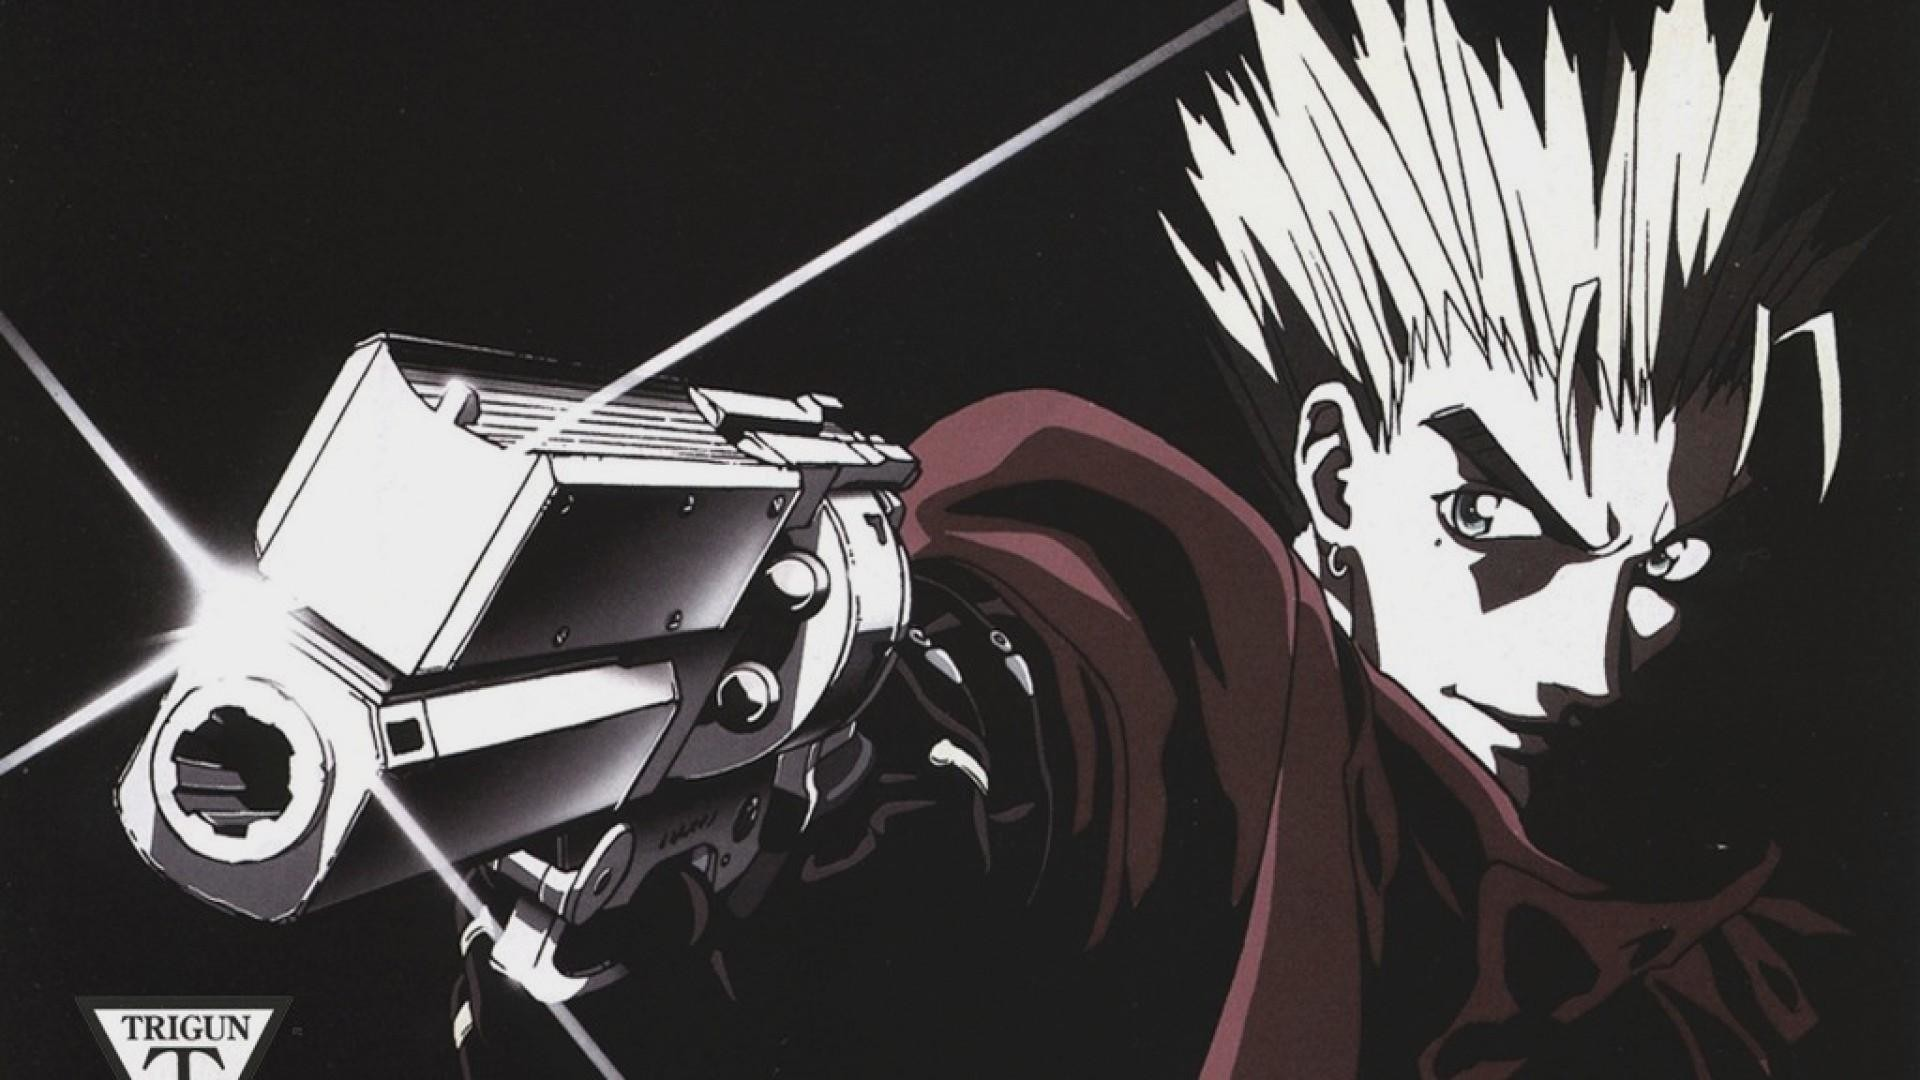 Res: 1920x1080, Trigun Wallpapers 13 - 1920 X 1080